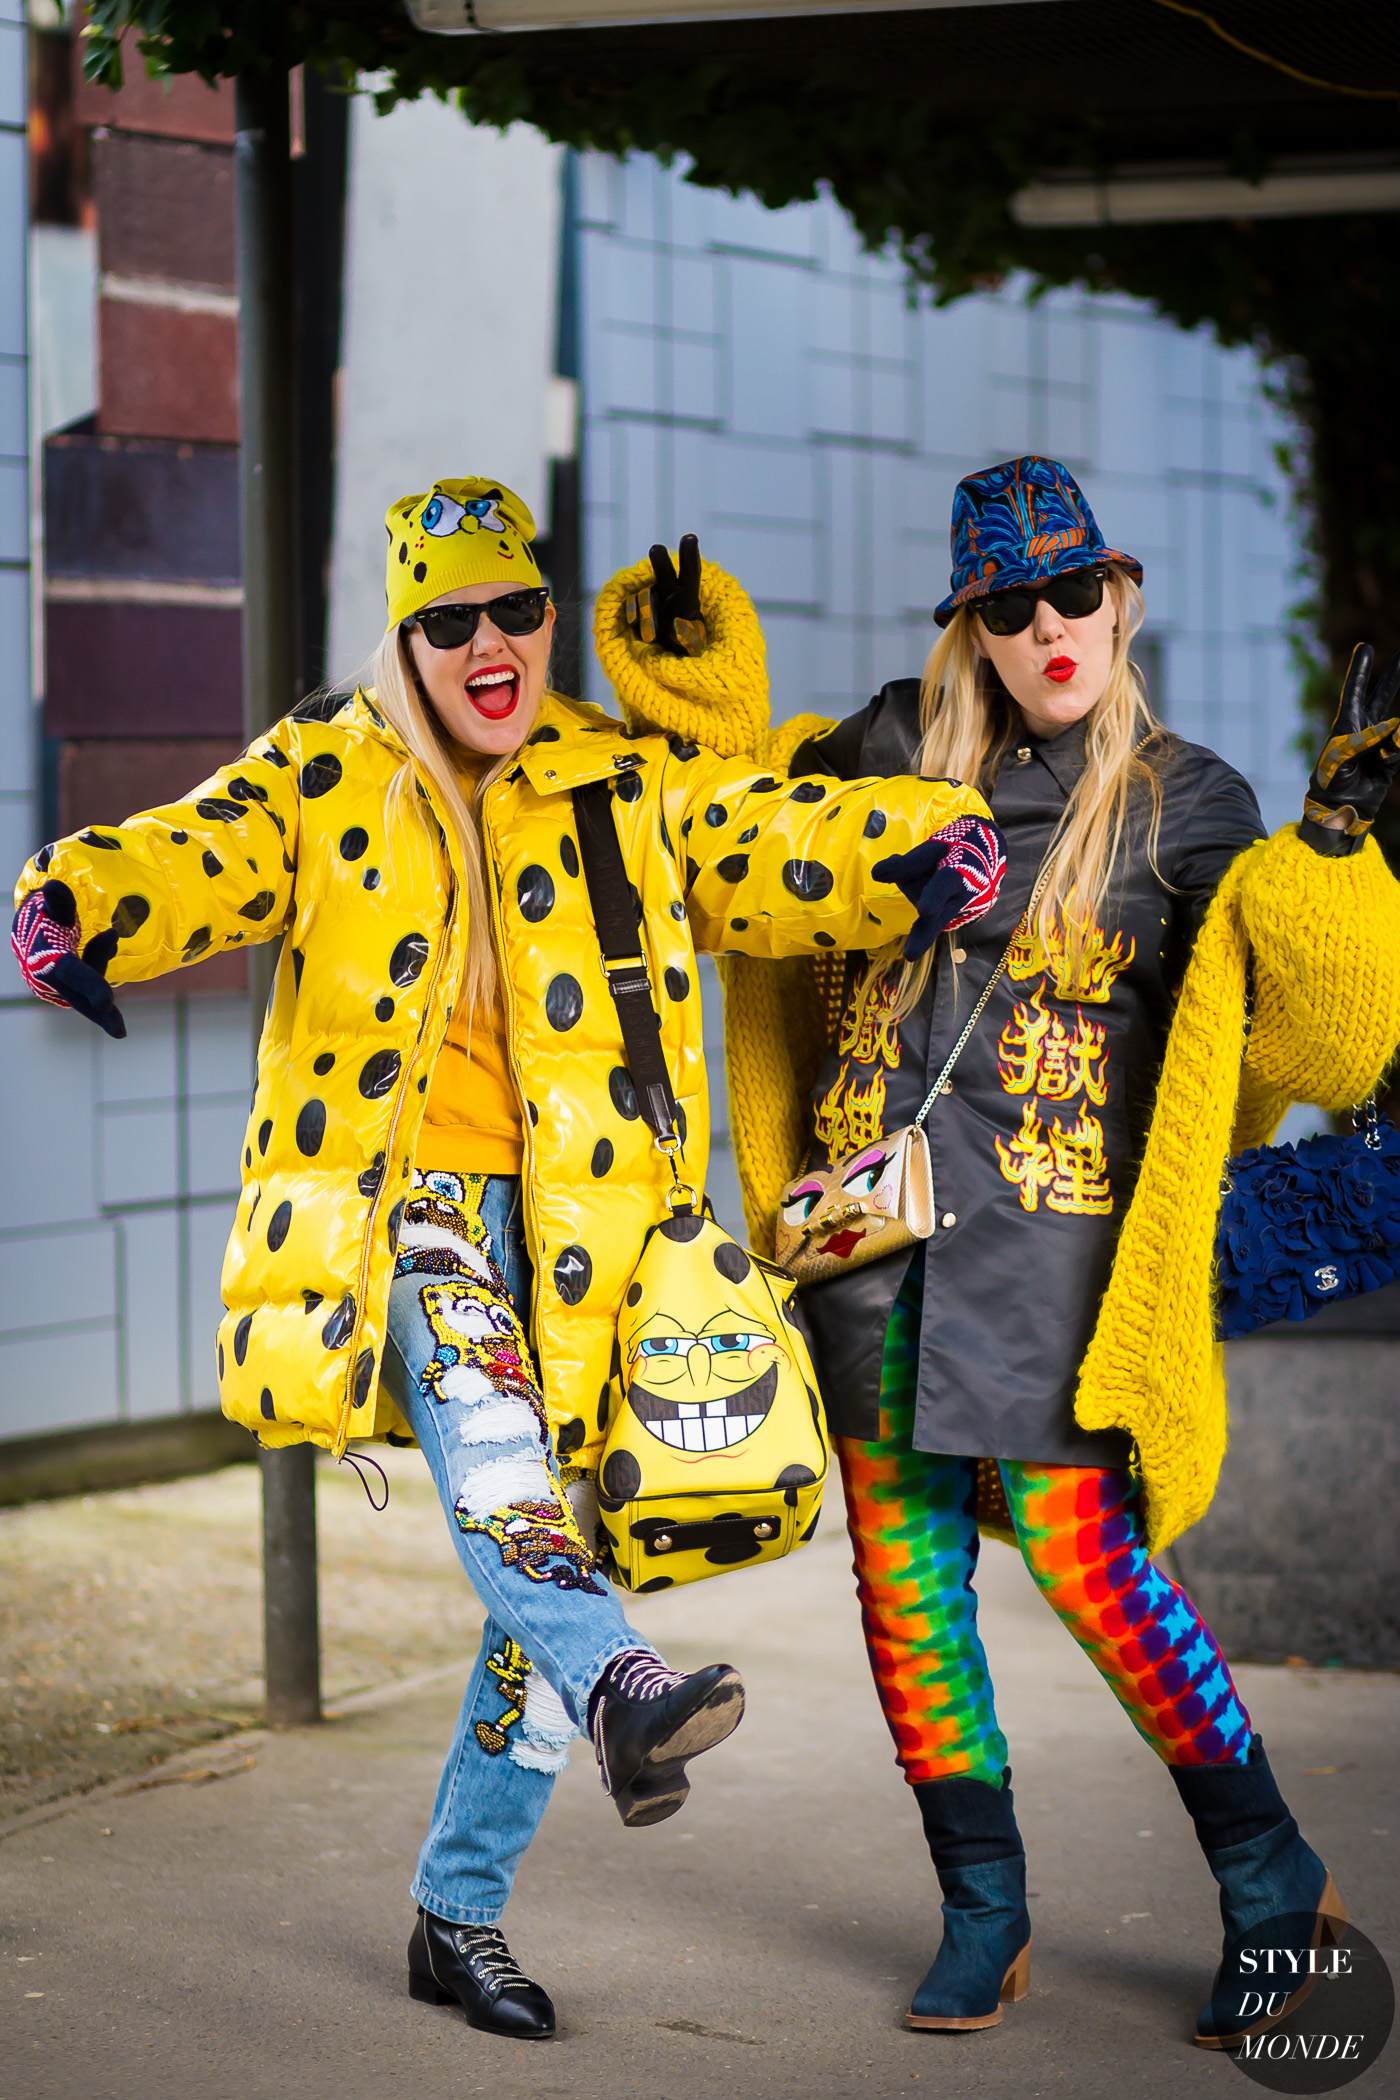 Cailli and Sam Beckerman Street Style Street Fashion Streetsnaps by STYLEDUMONDE Street Style Fashion Photography